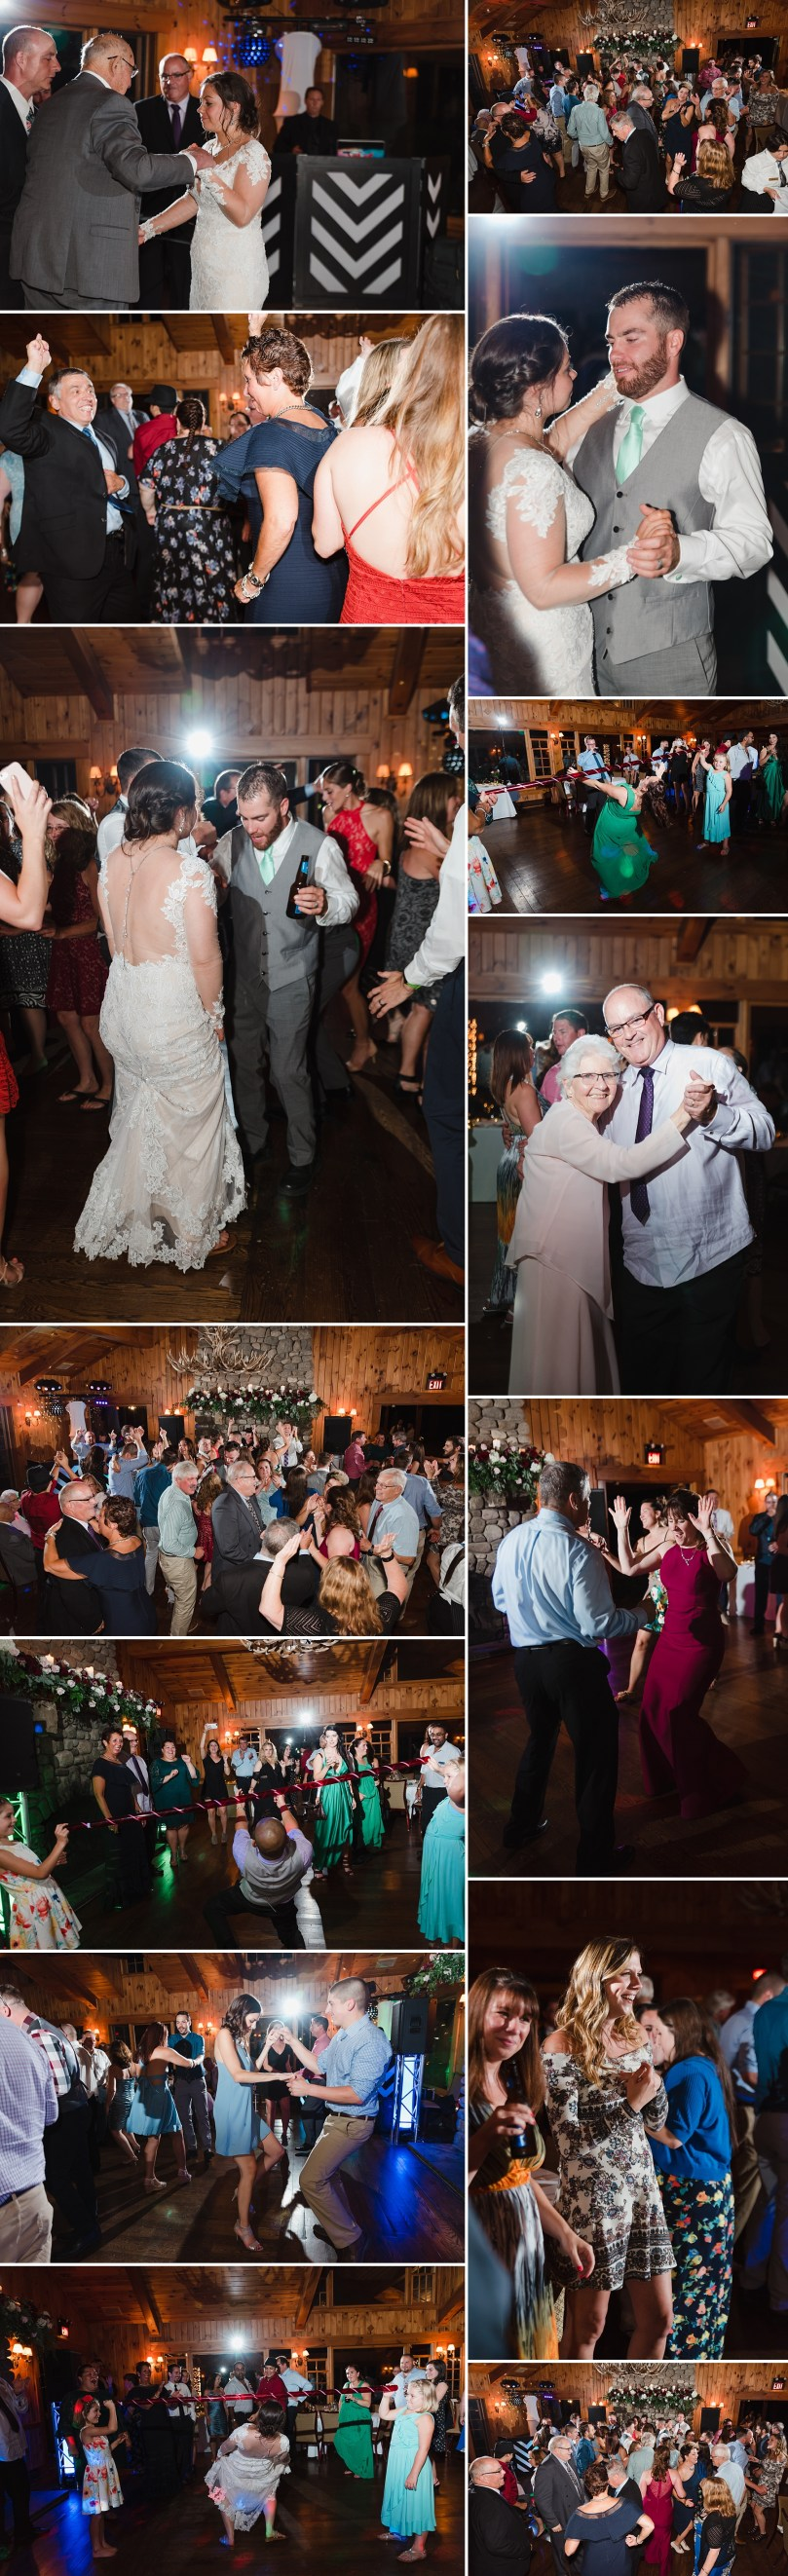 LakePlacid_Wedding-9640_LakePlacid_Wedding_CB